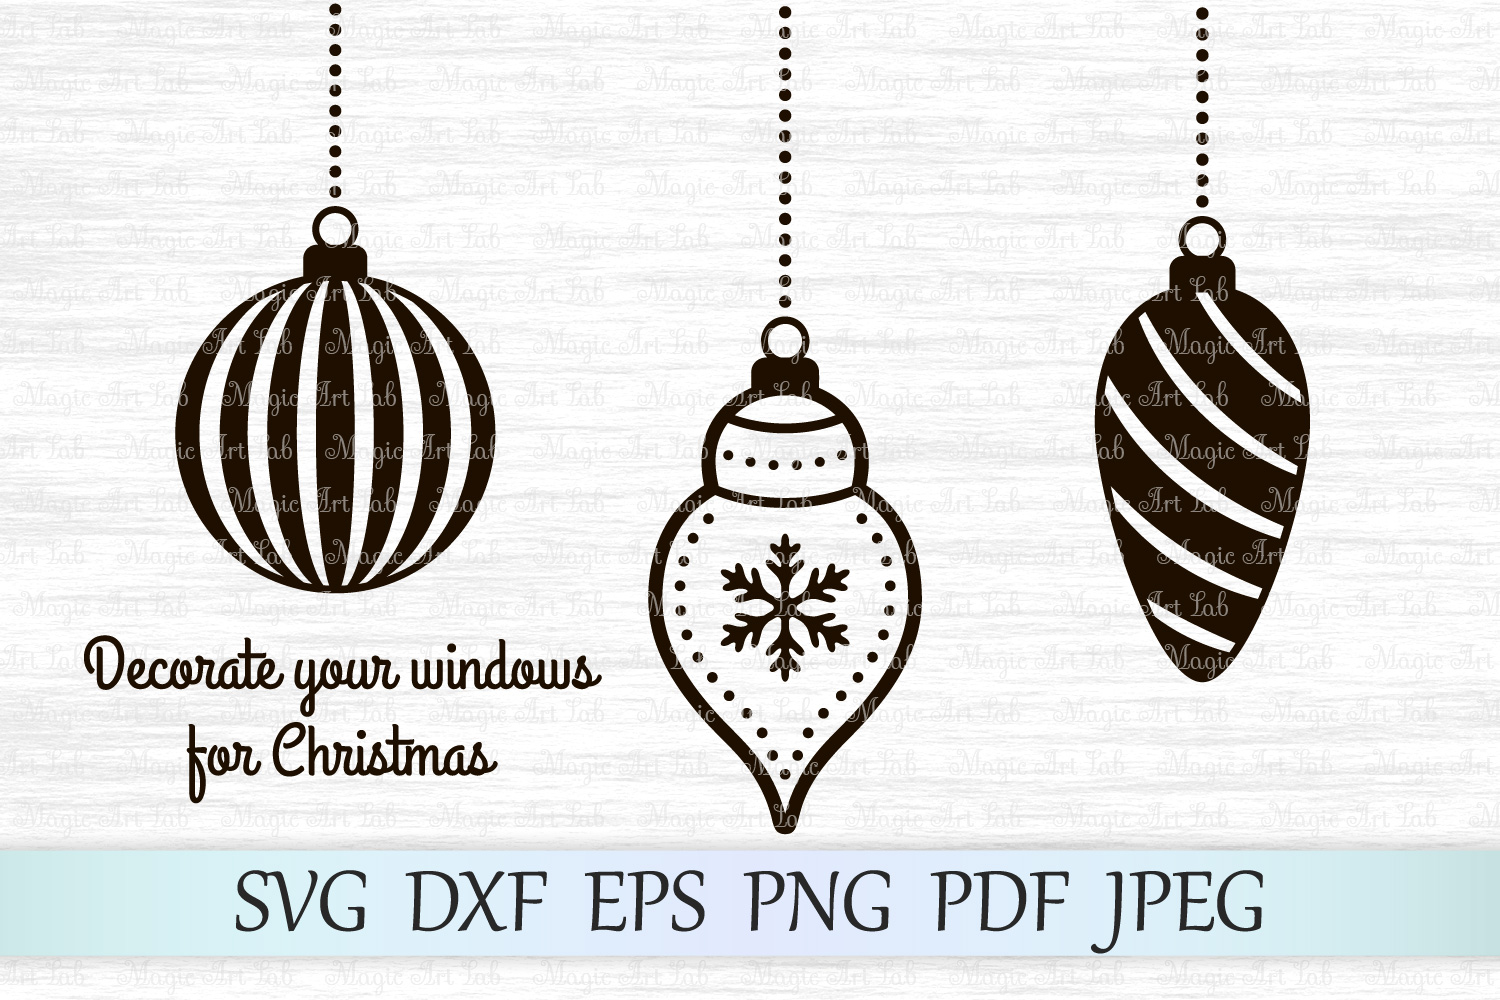 Download Free Christmas Balls Graphic By Magicartlab Creative Fabrica for Cricut Explore, Silhouette and other cutting machines.